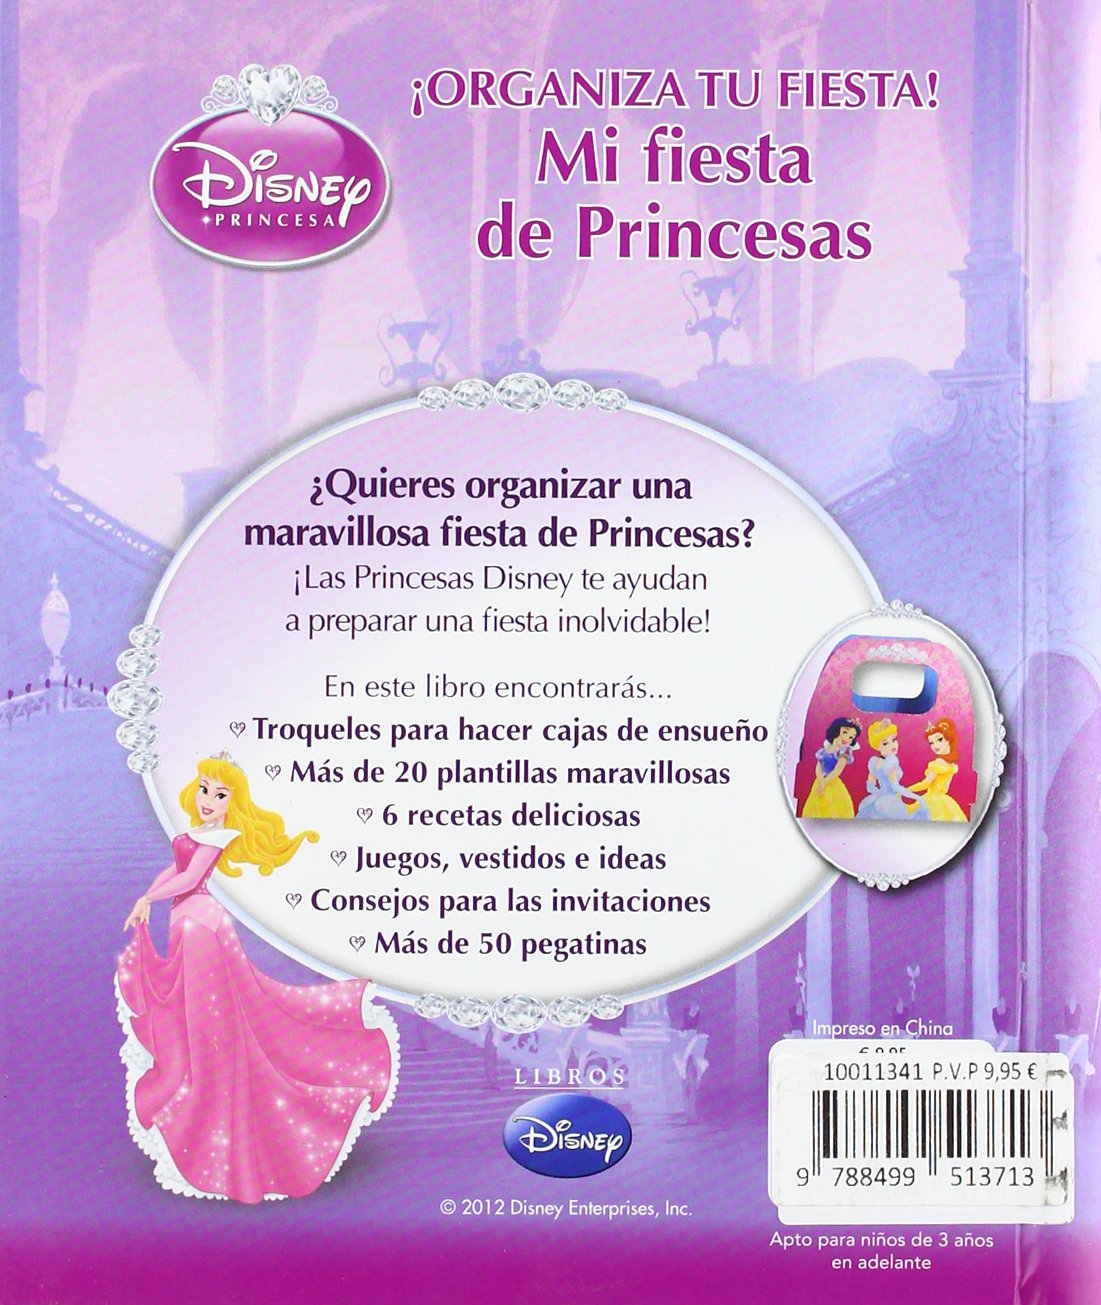 Mi fiesta de princesas: Disney: 9788499513713: Amazon.com: Books